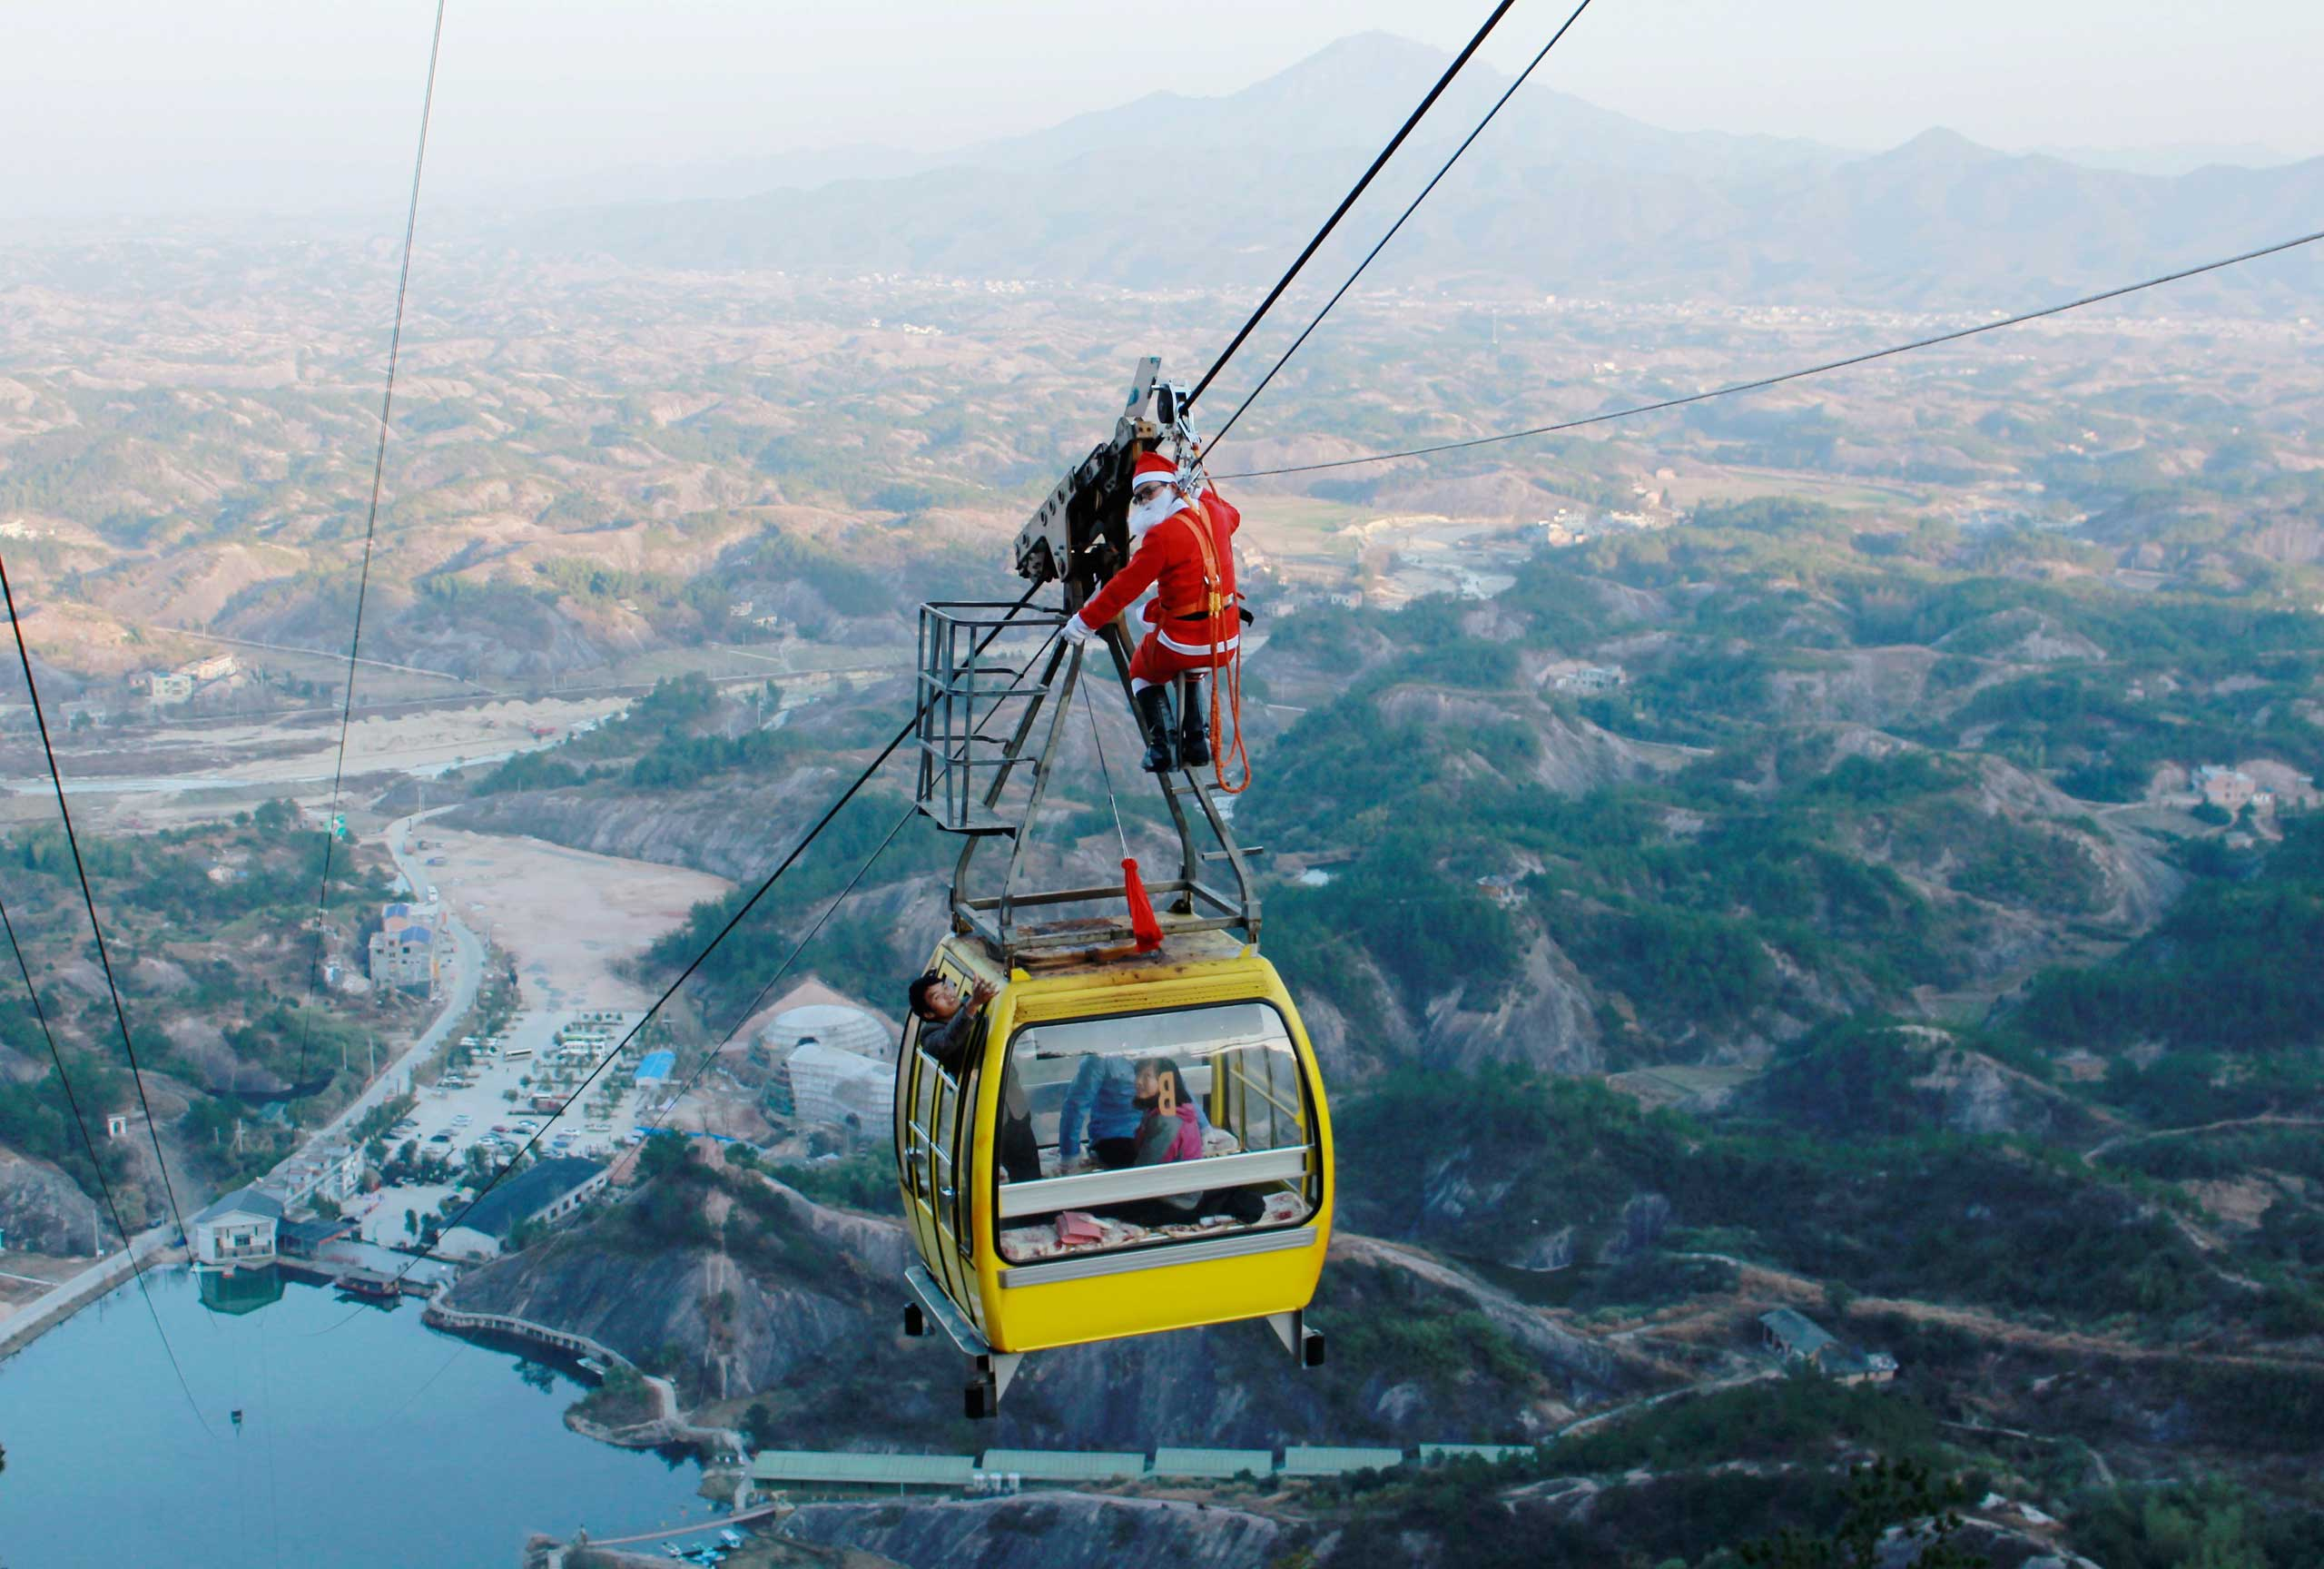 A worker dressed as a Santa Claus delivers gifts to tourists in the cable car ahead of Christmas Day celebrations  in Pingjiang county in China's Hunan province.